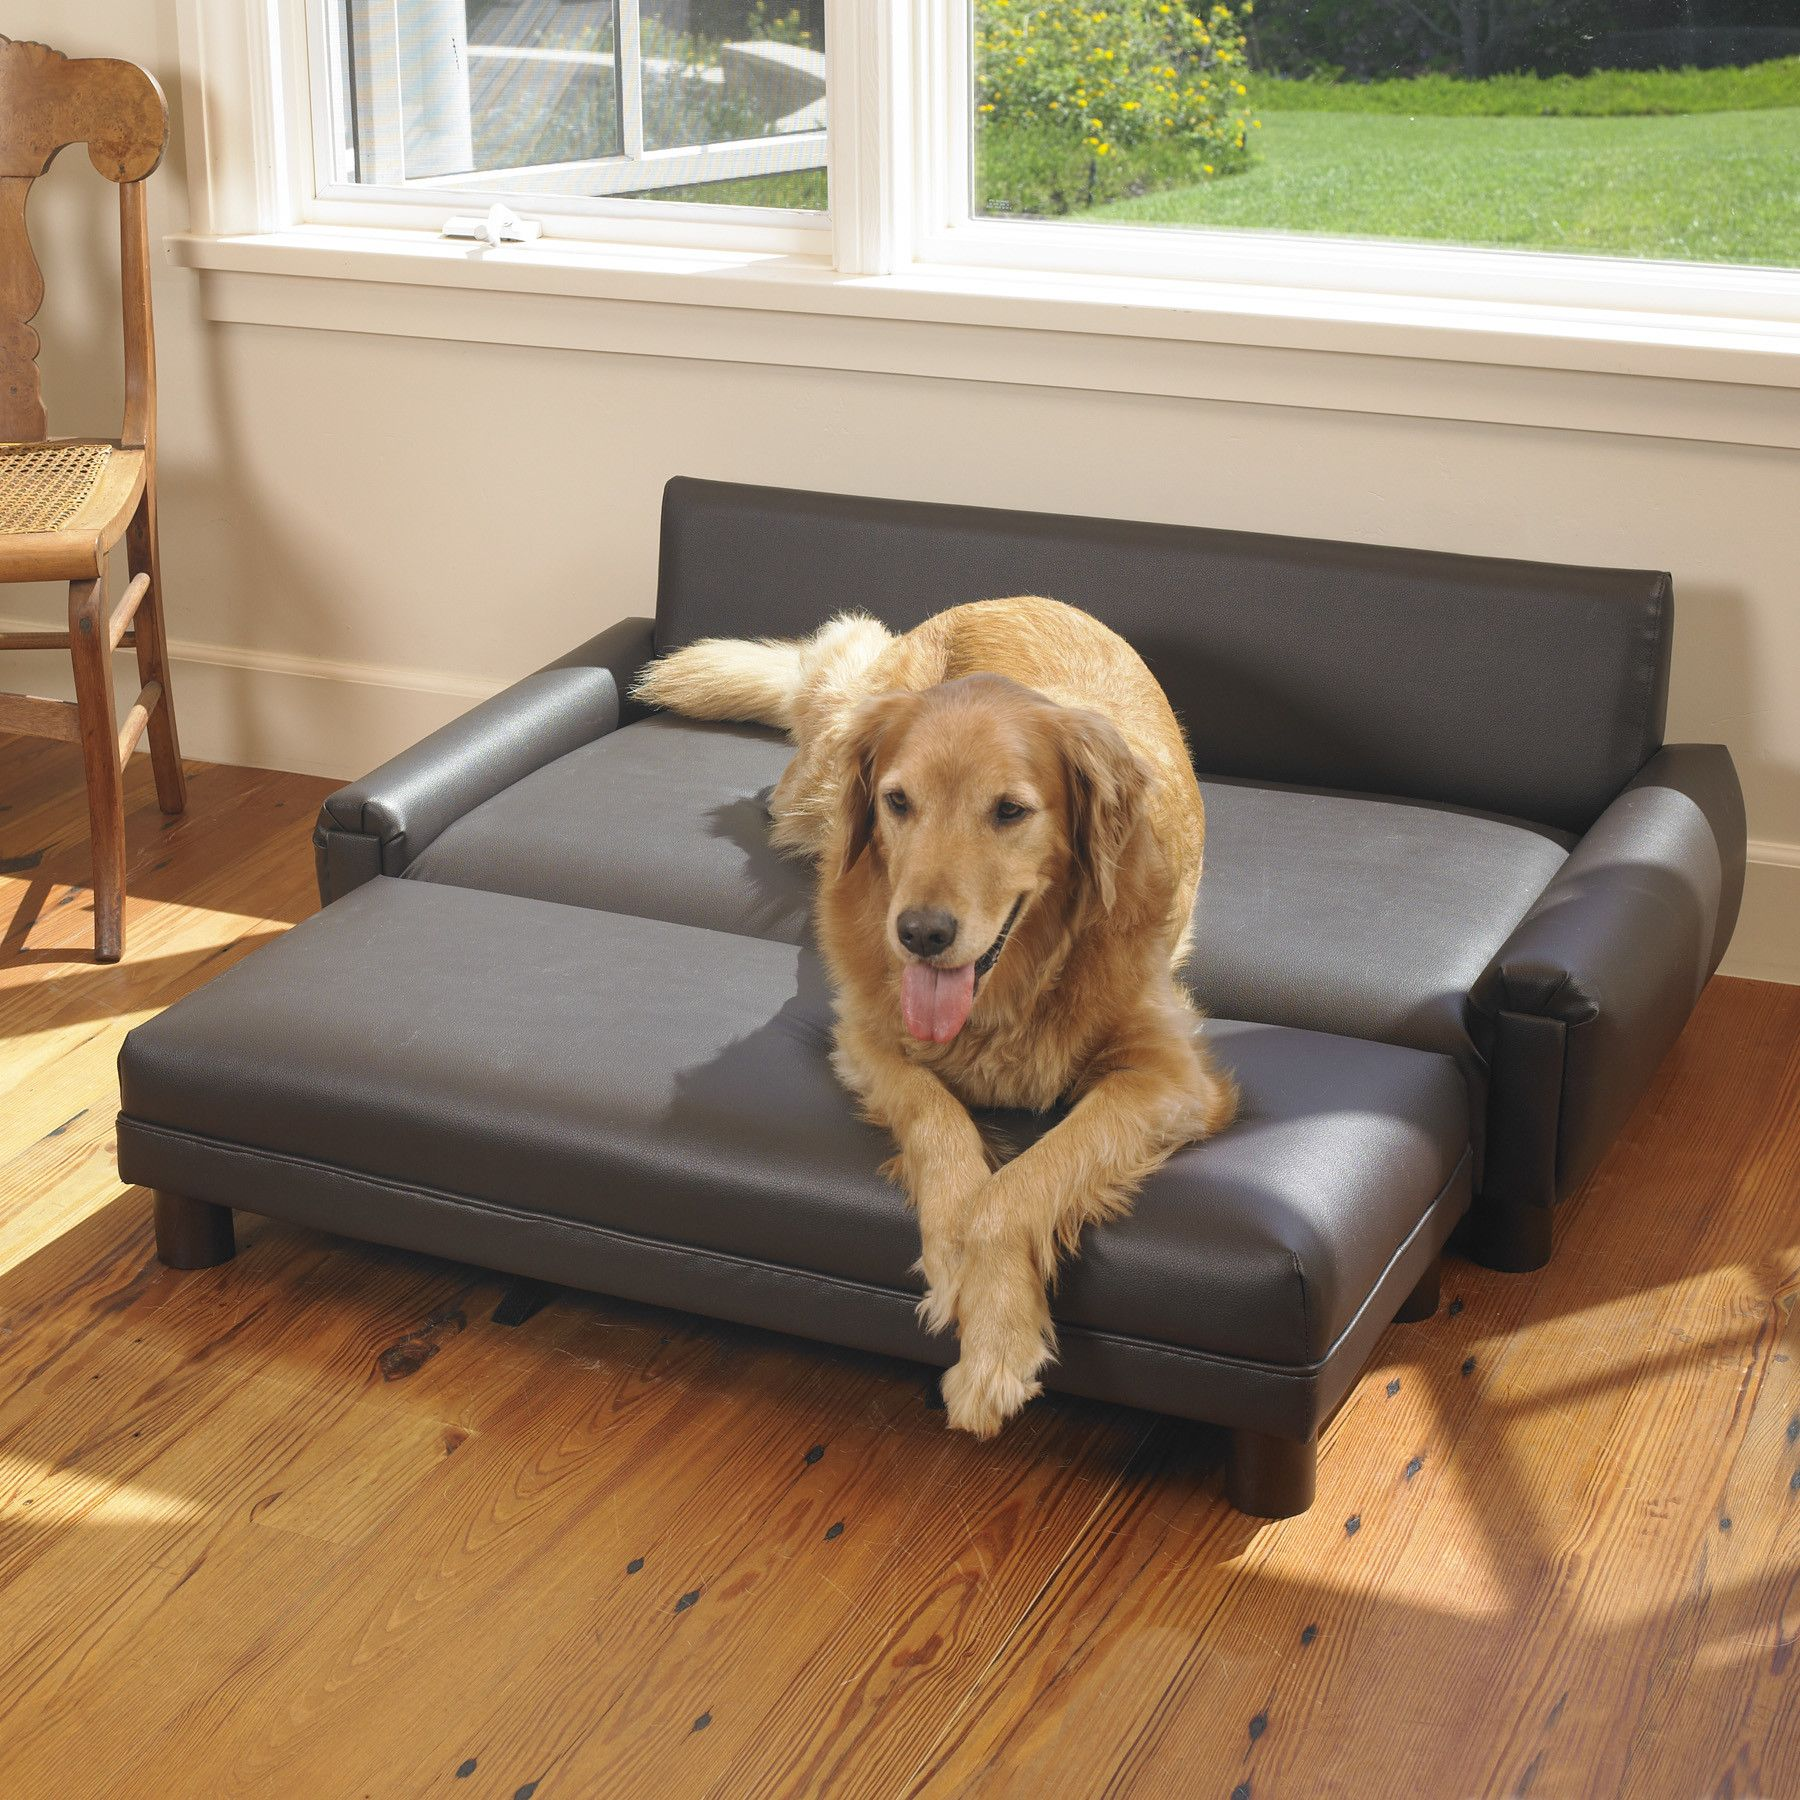 Surprising Living Room Black Faux Leather Sofa Bed For Large Pets Machost Co Dining Chair Design Ideas Machostcouk